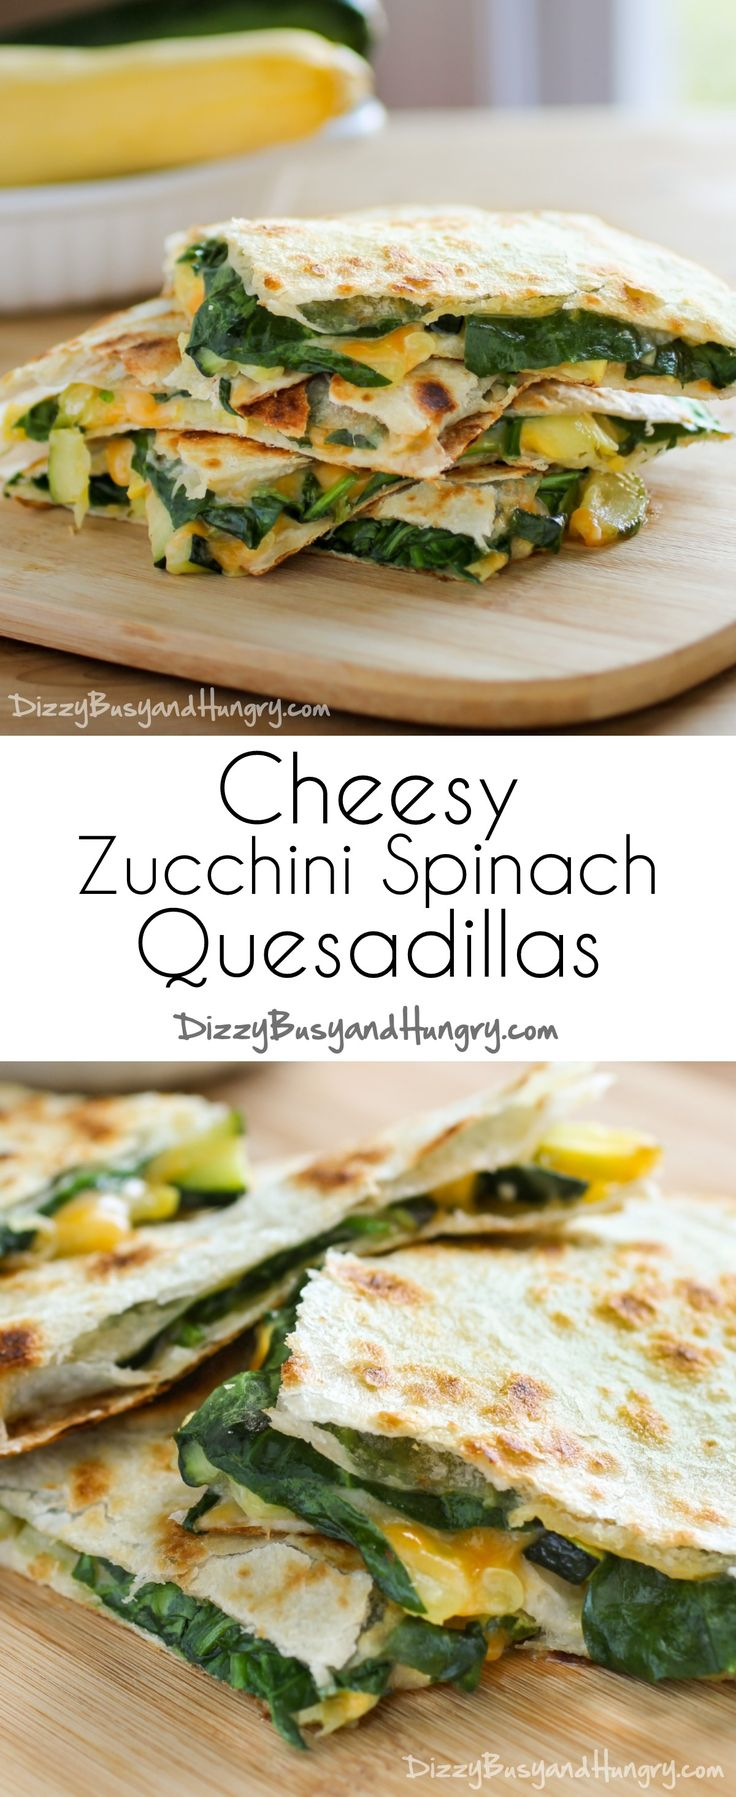 Cheesy Zucchini Spinach Quesadillas